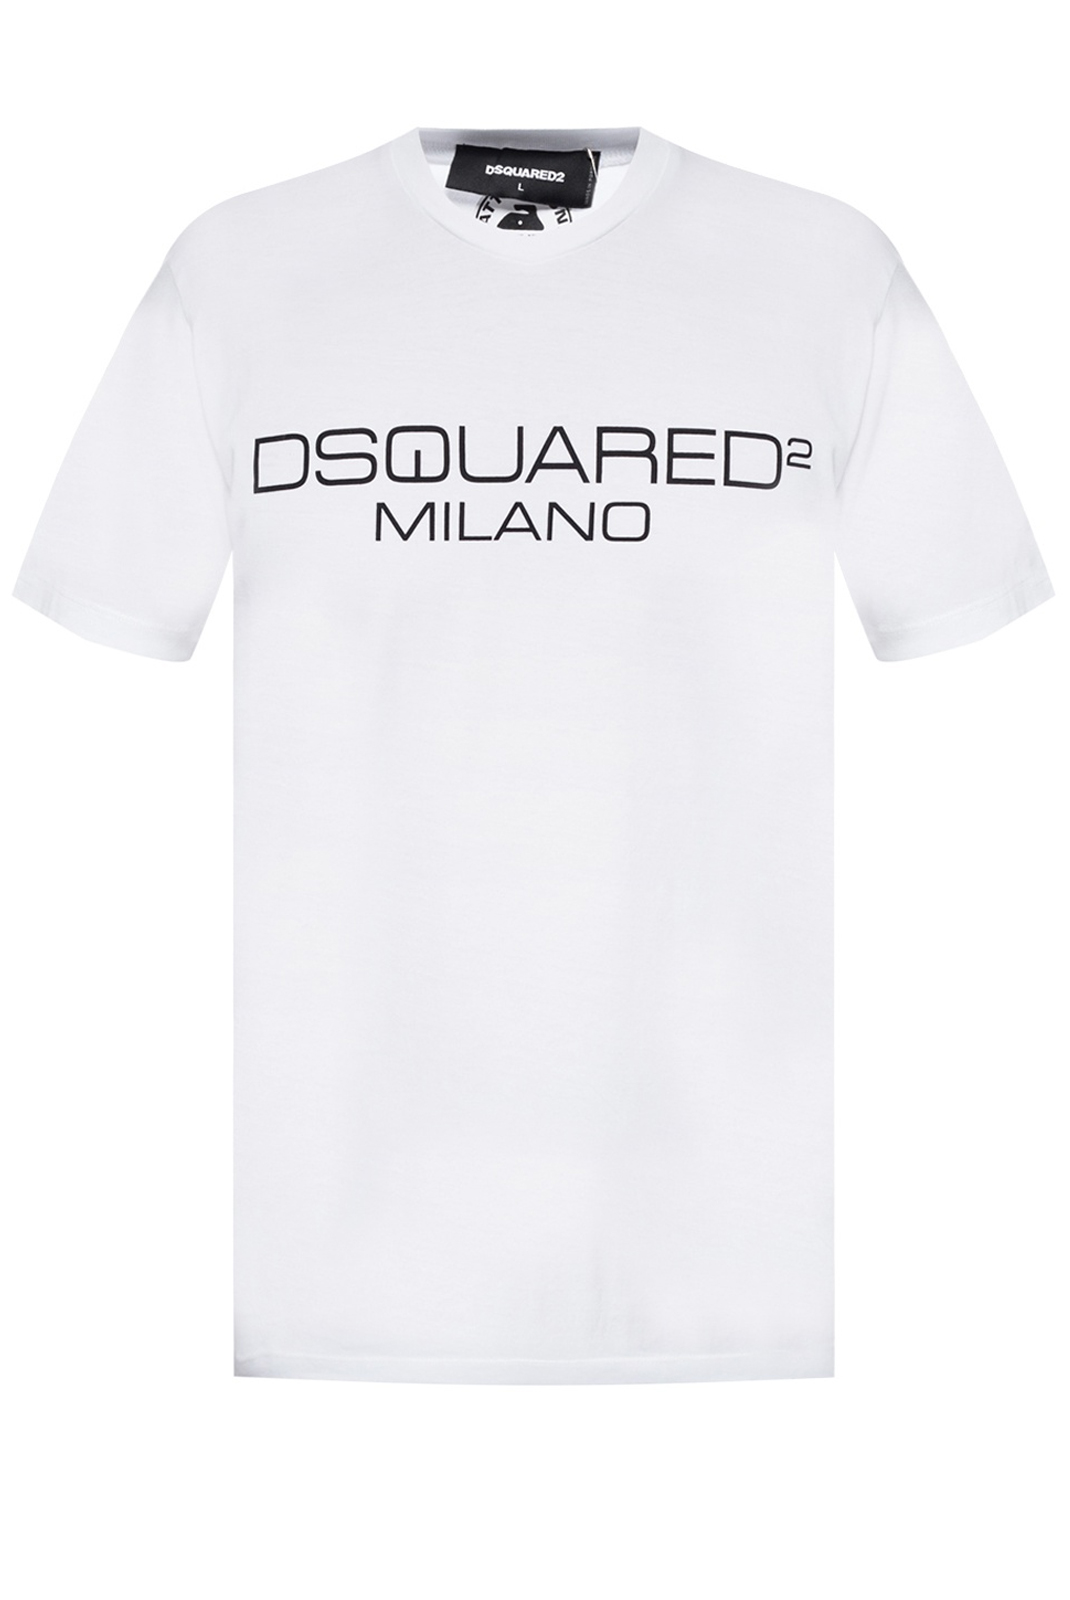 Tee-shirts  Dsquared2 S74GD0644 100 WHITE